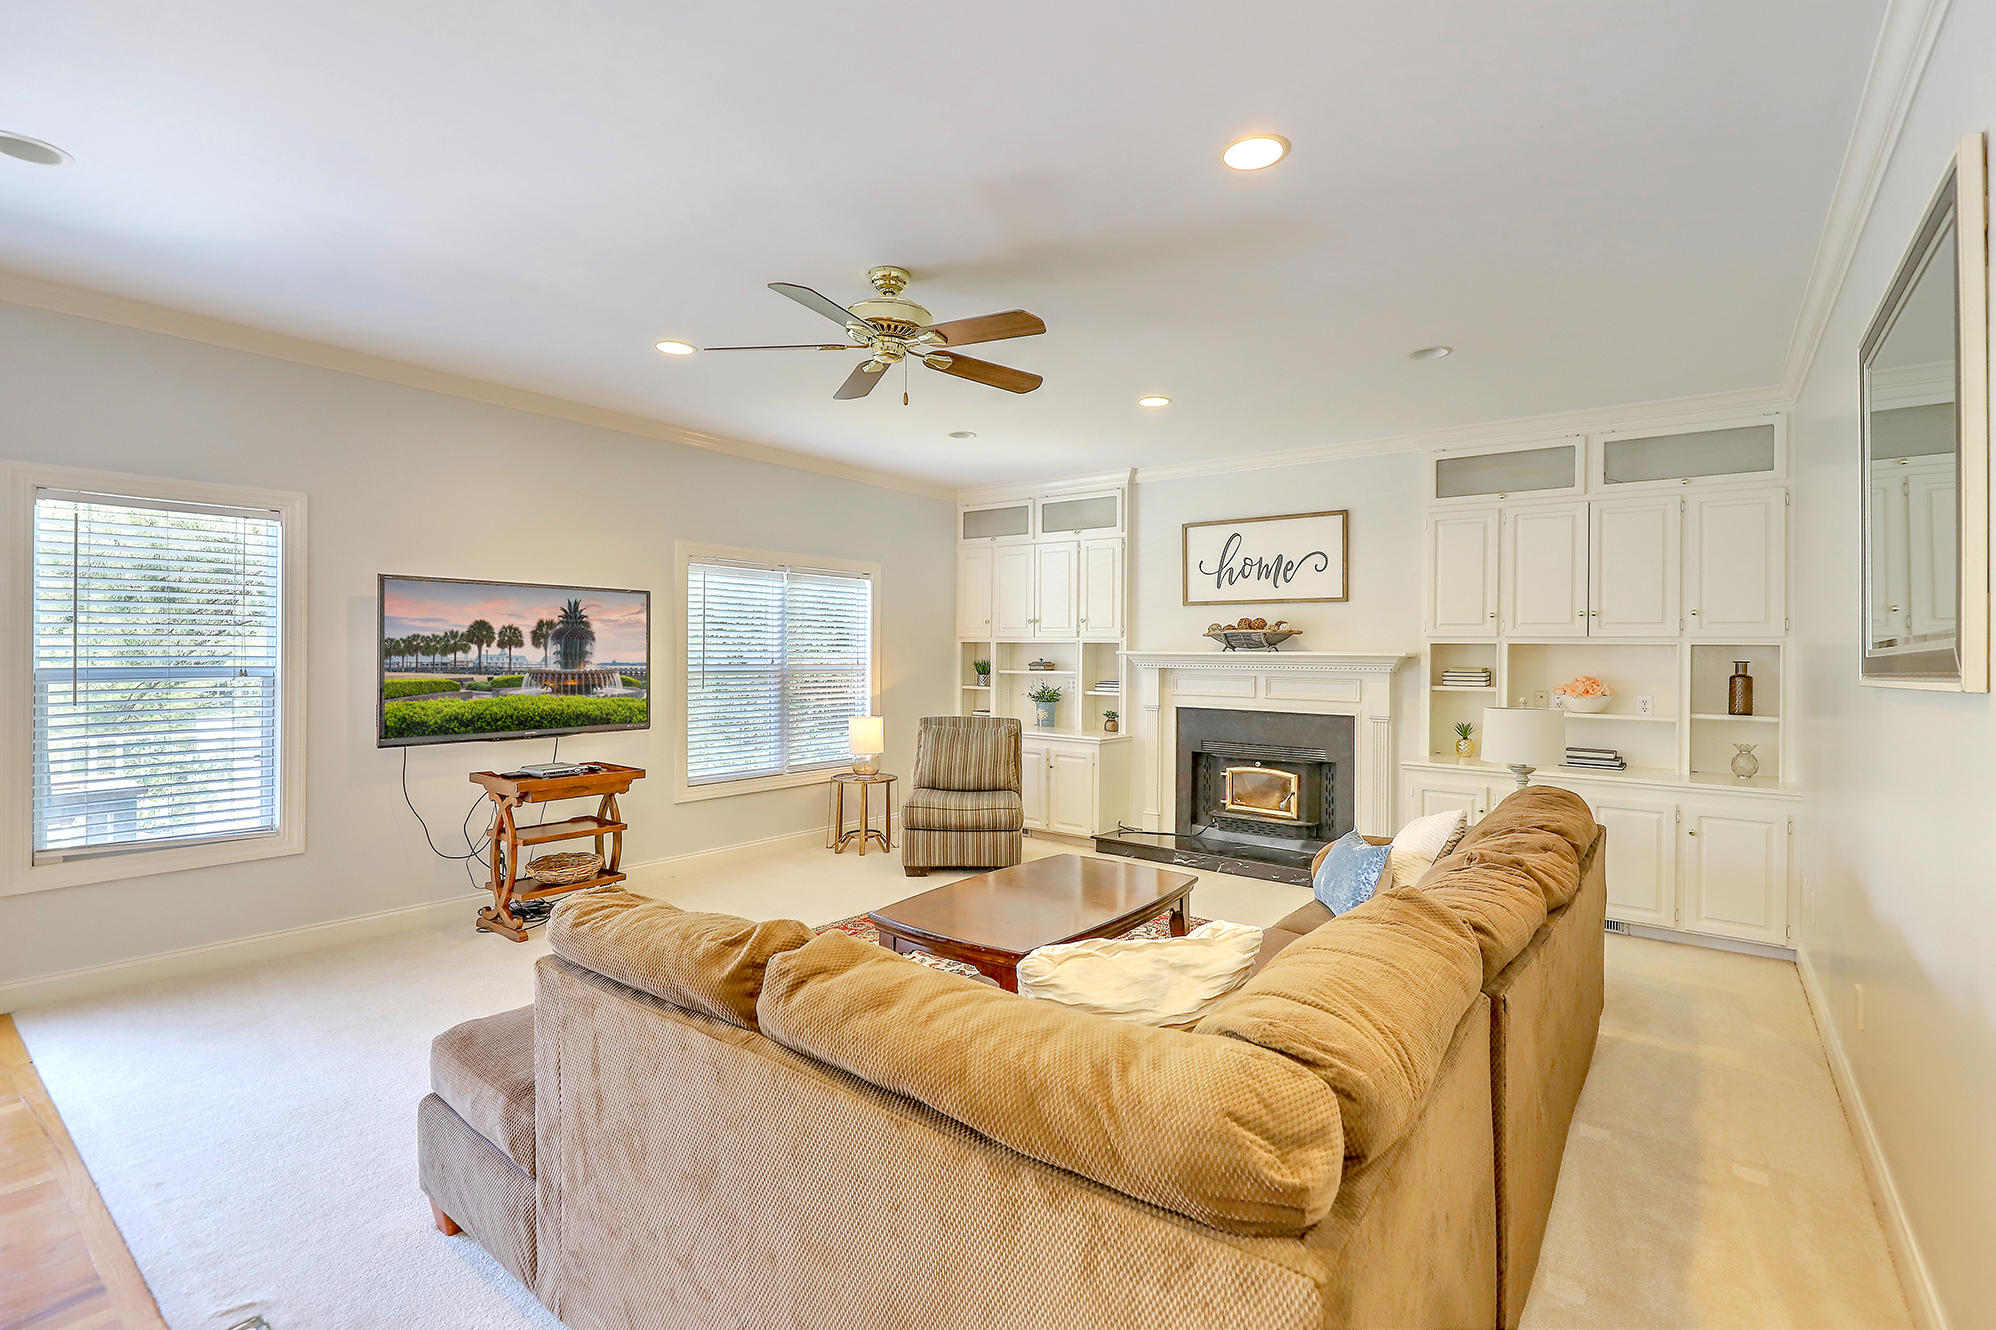 Stono Ferry Homes For Sale - 5104 St Ann, Hollywood, SC - 20